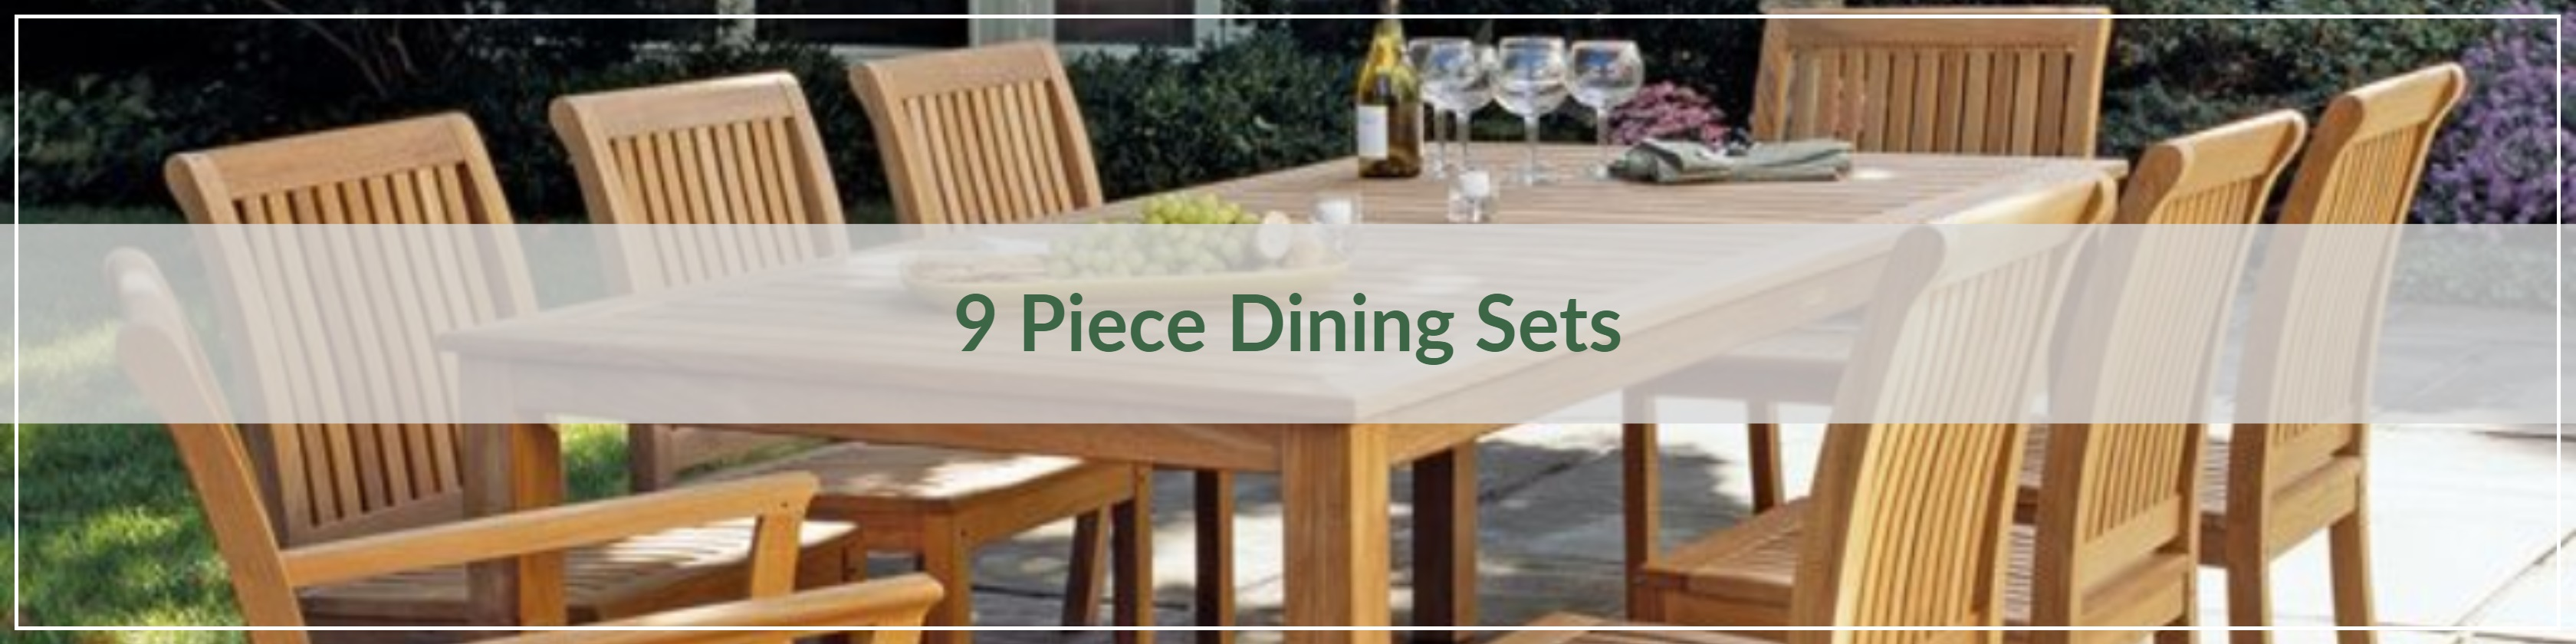 9 Piece Outdoor Dining Sets